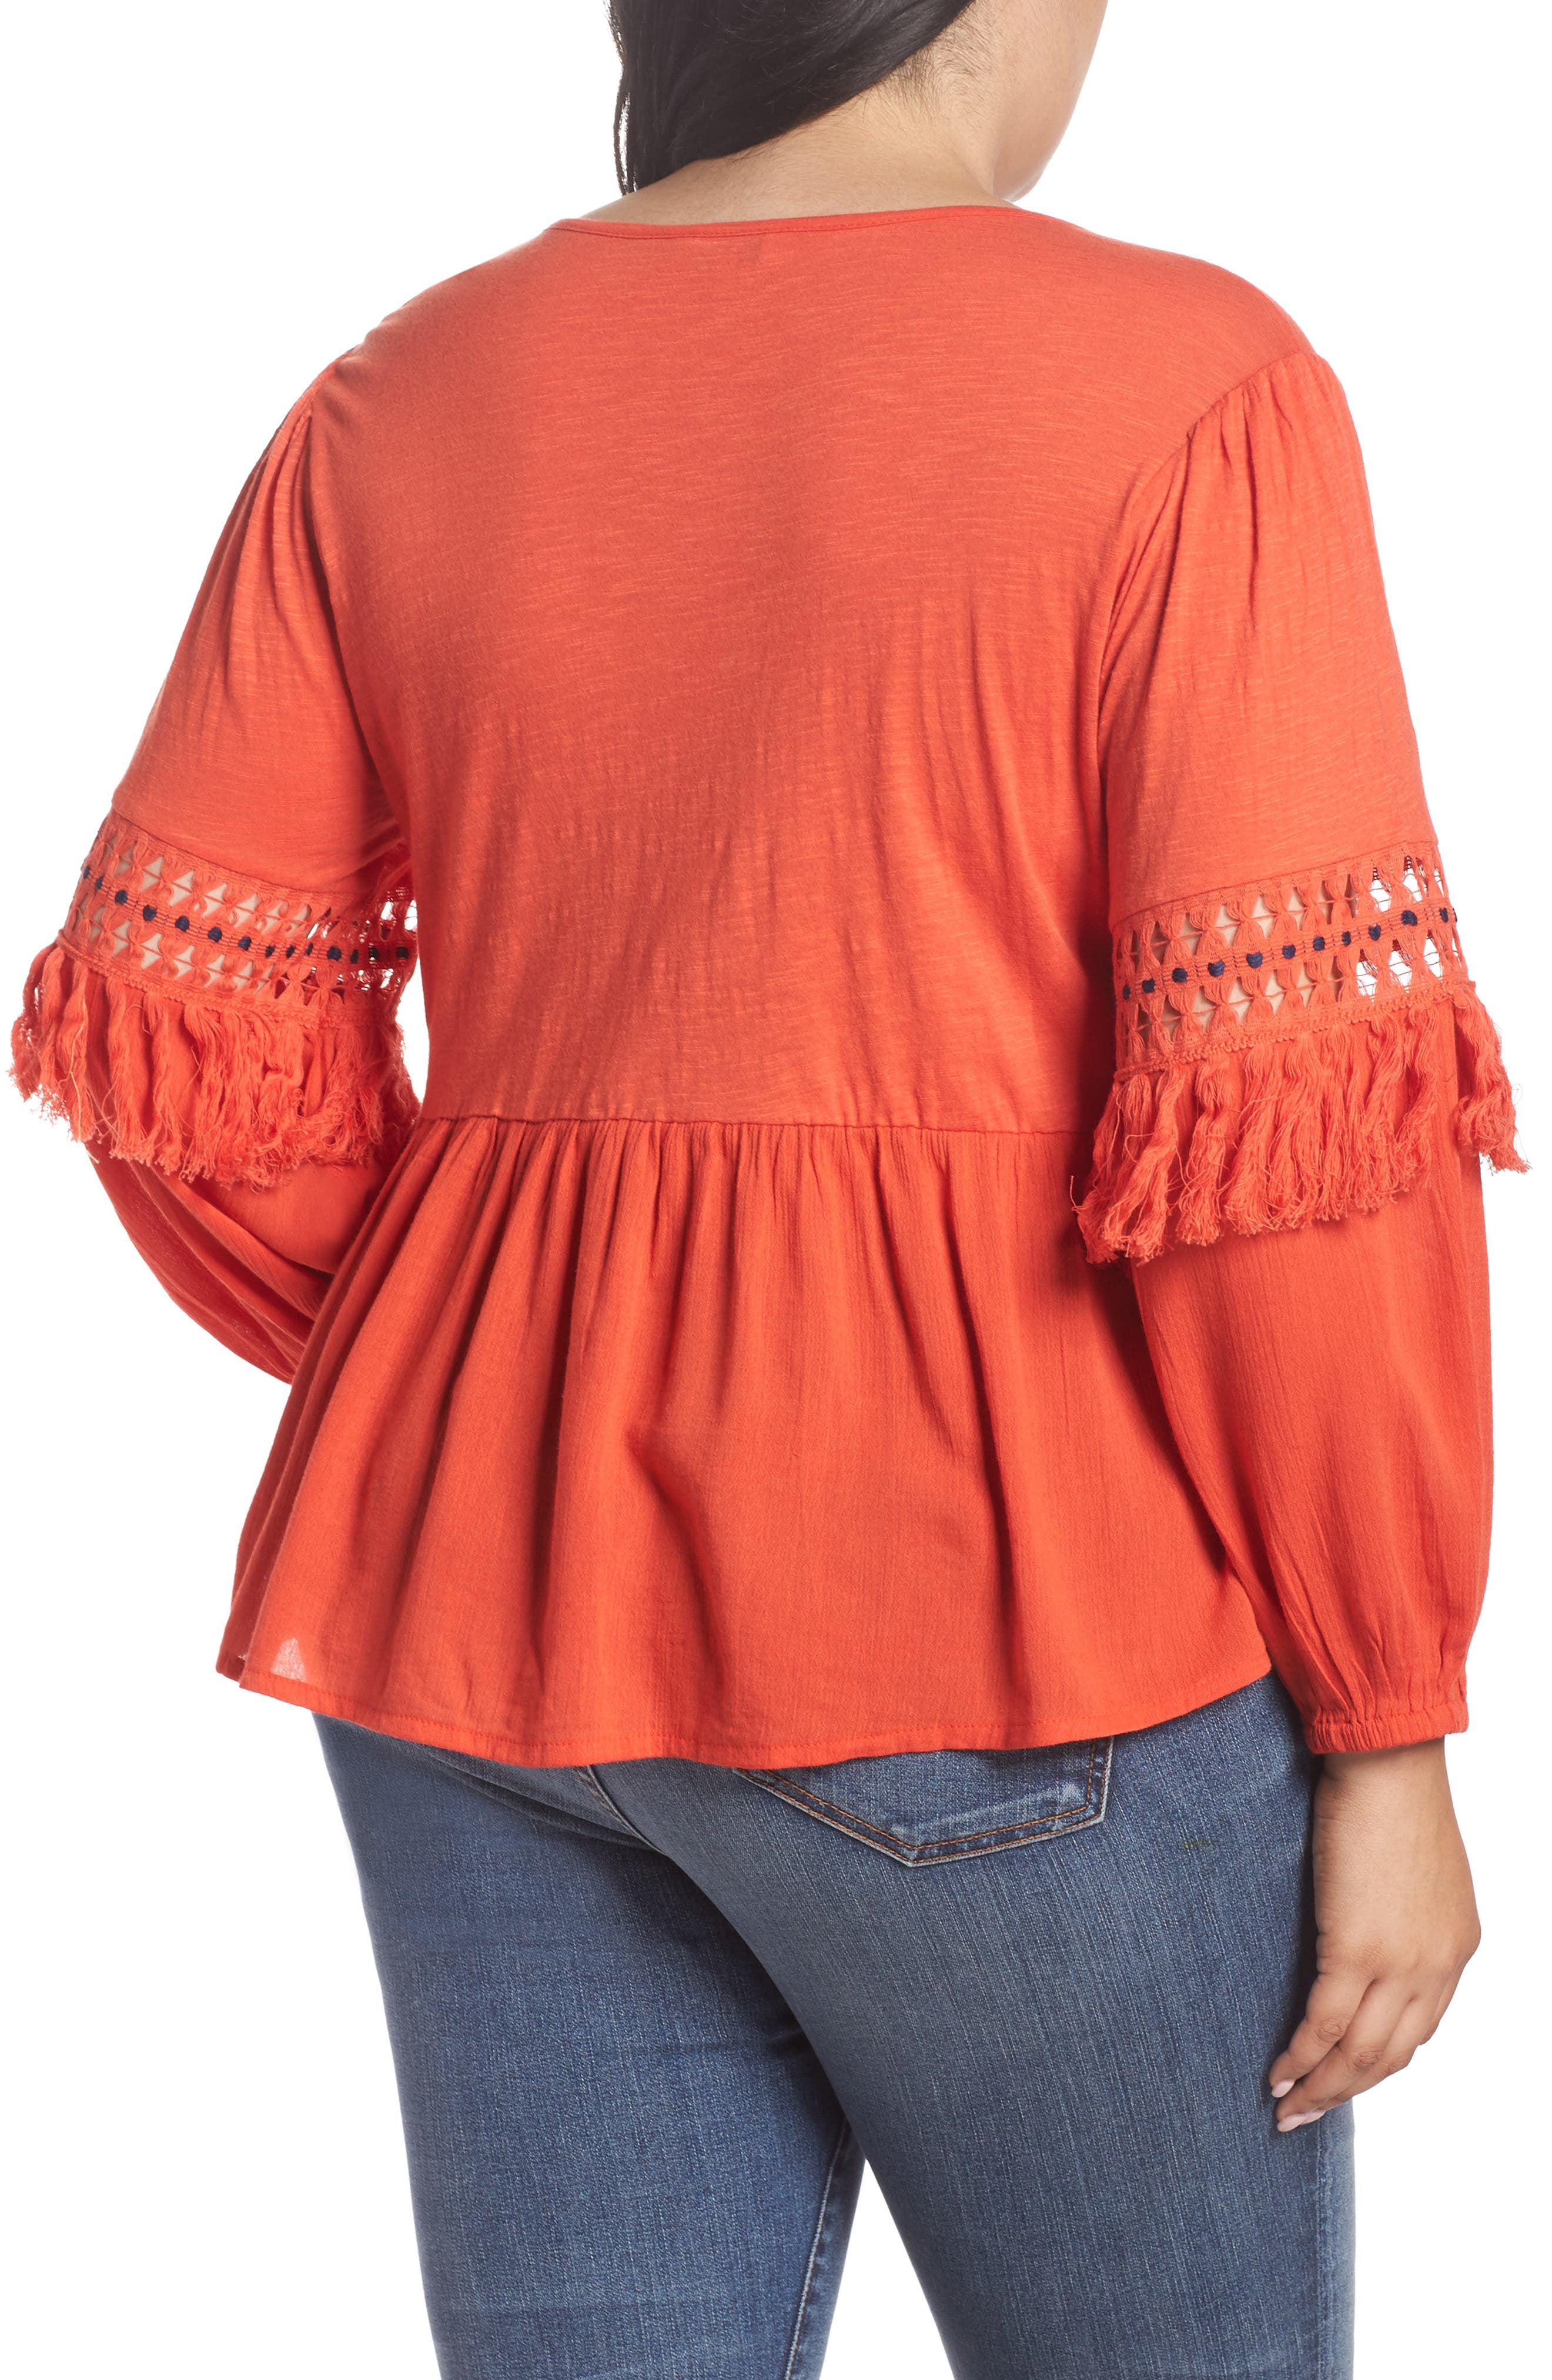 Cutout Peasant Top,                             Alternate thumbnail 2, color,                             Red Clay